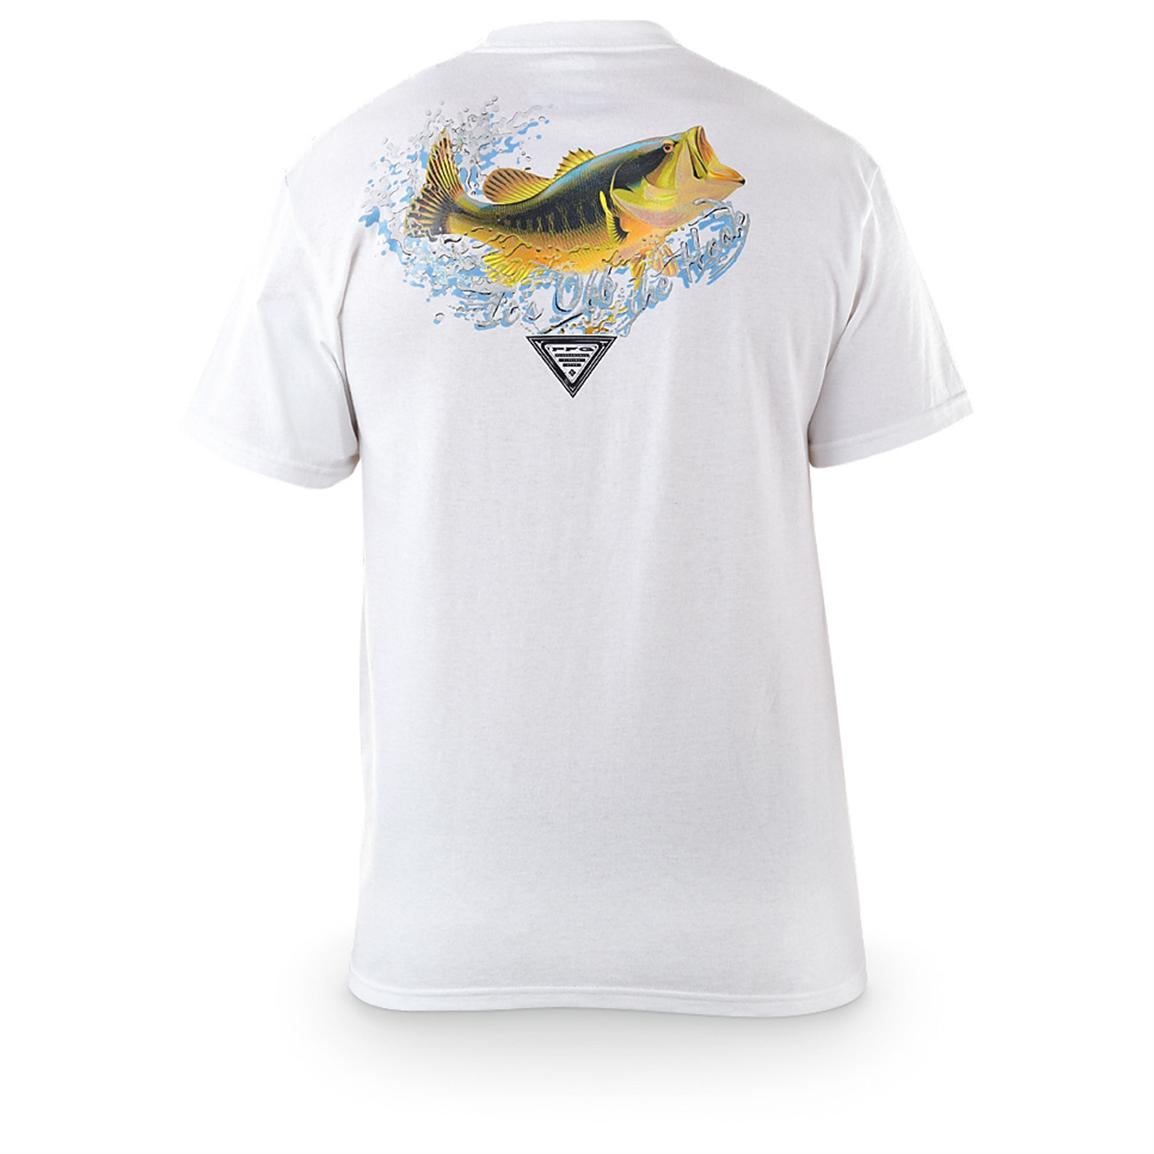 Columbia pfg at anchor short sleeved t shirt 424585 for What is a pfg shirt